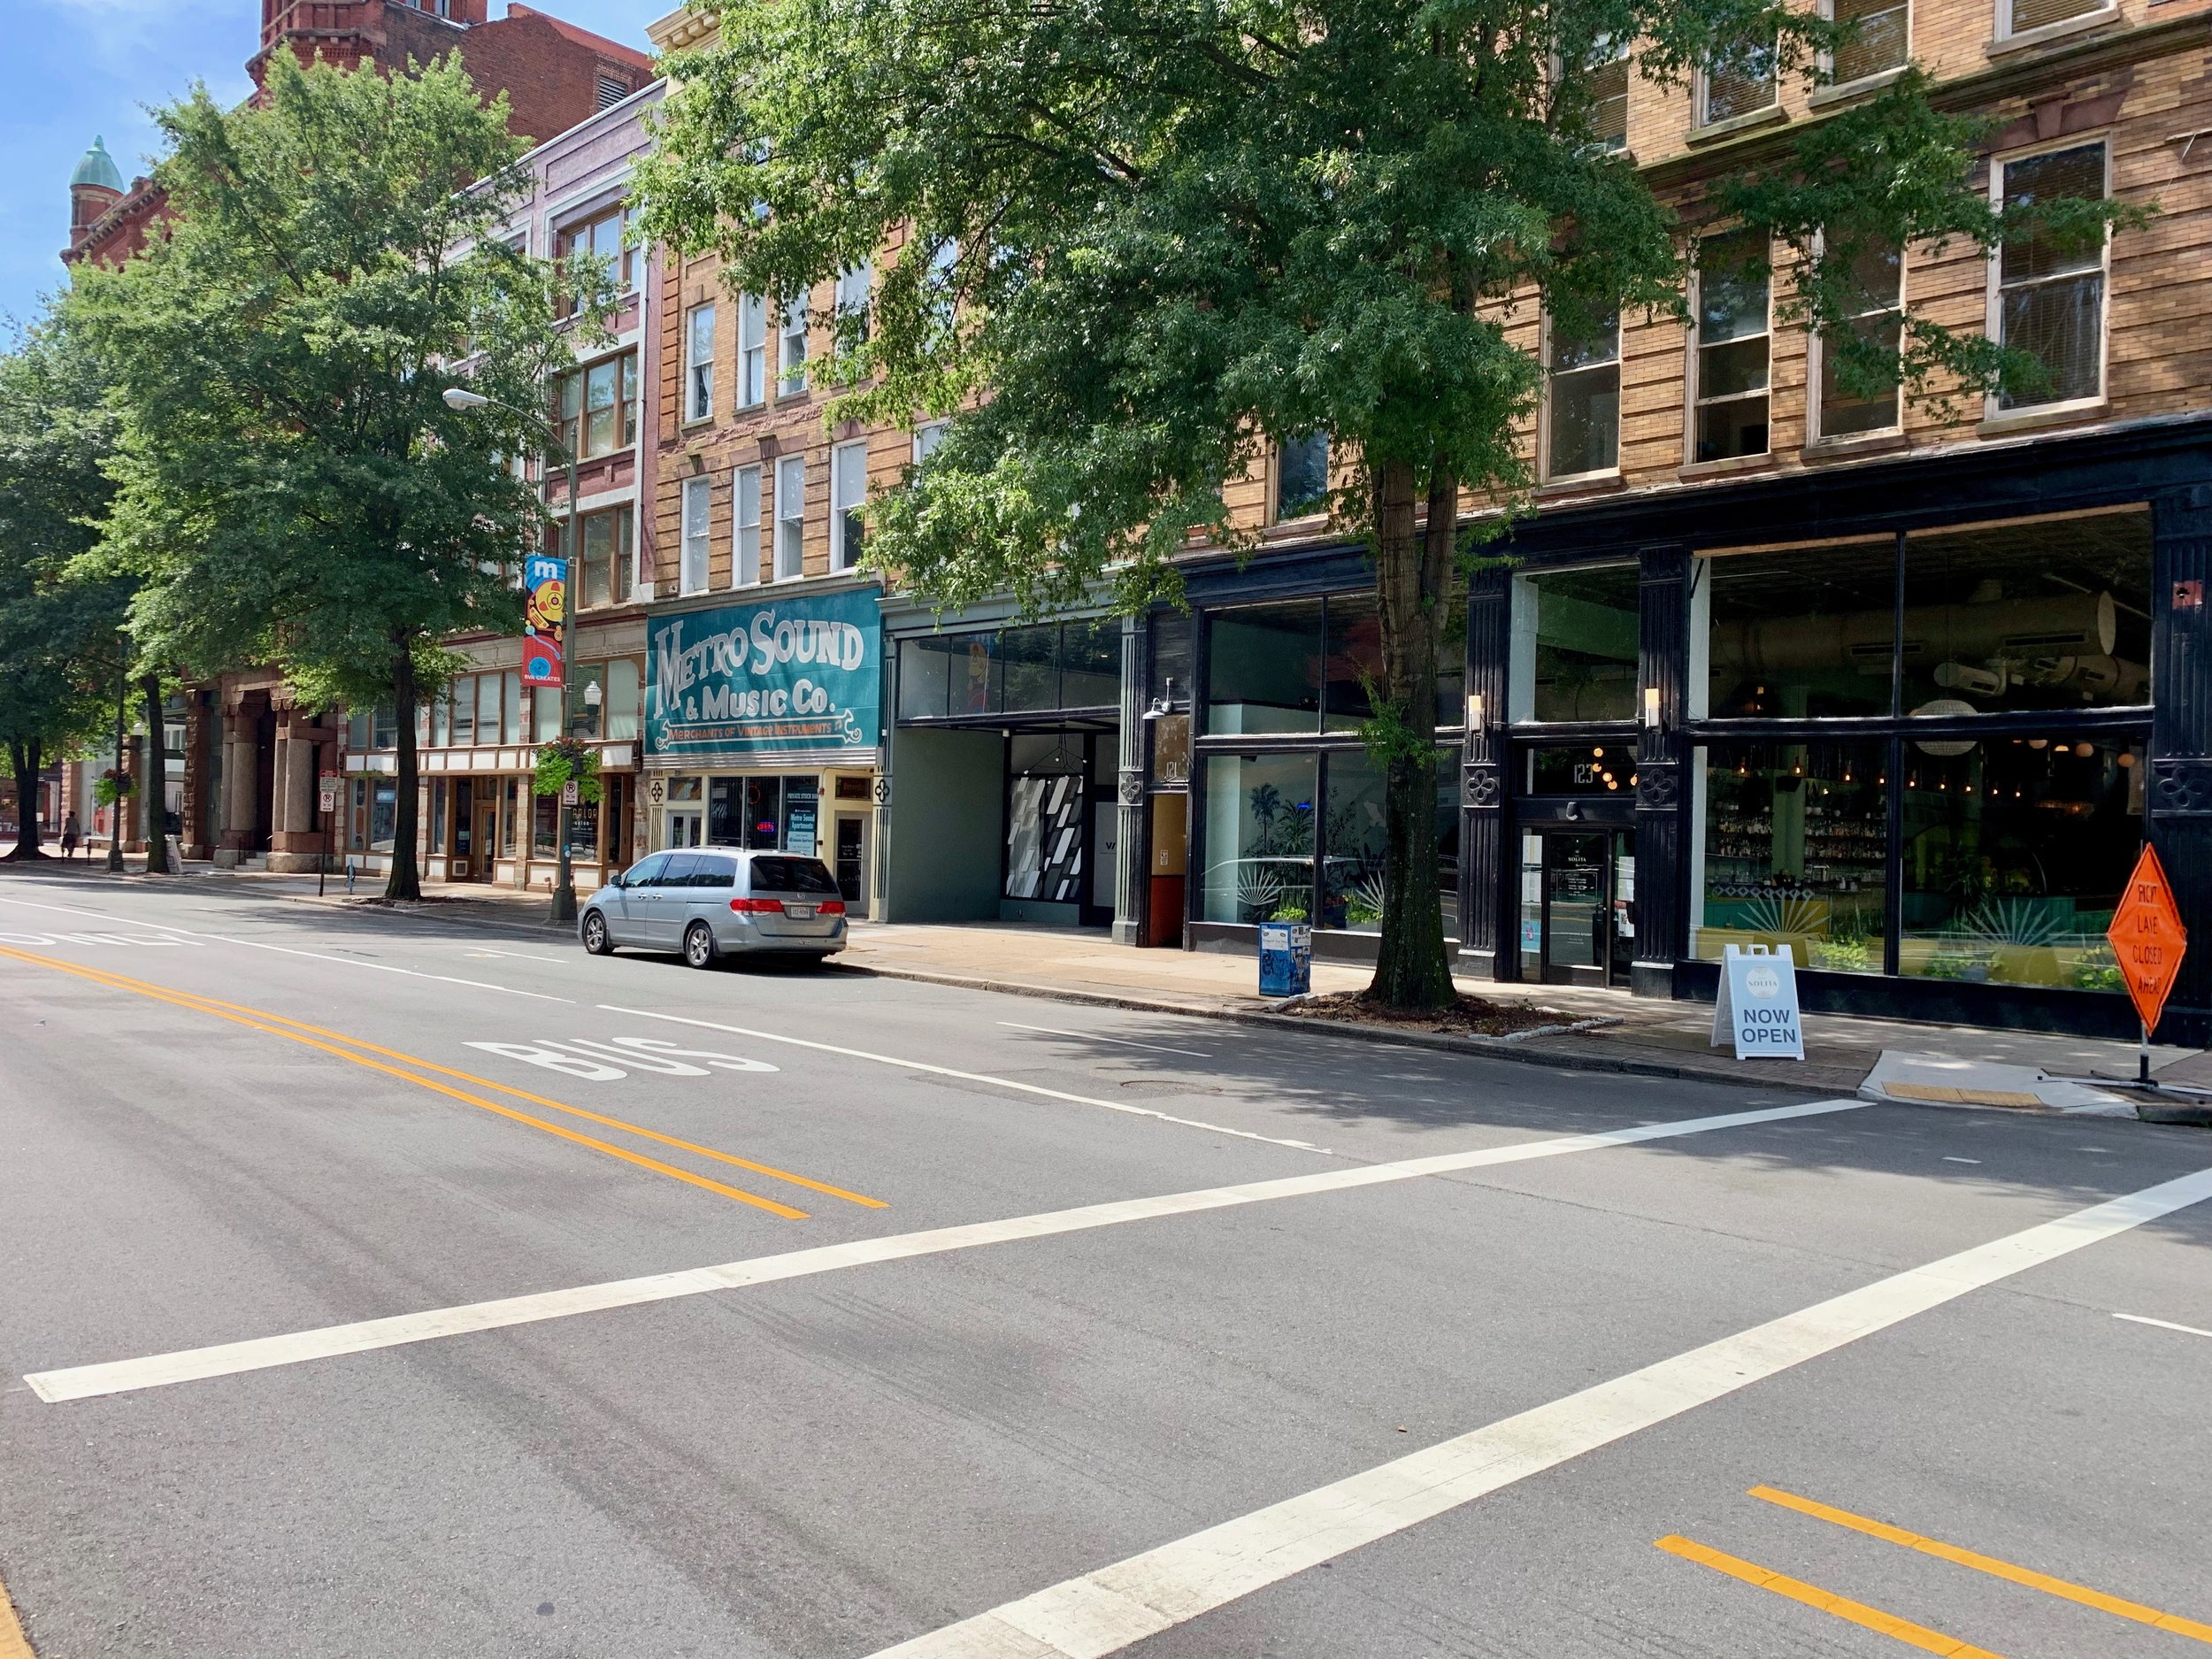 A snippet of West Broad Street. Broad Street runs through the center of the Richmond Arts District.